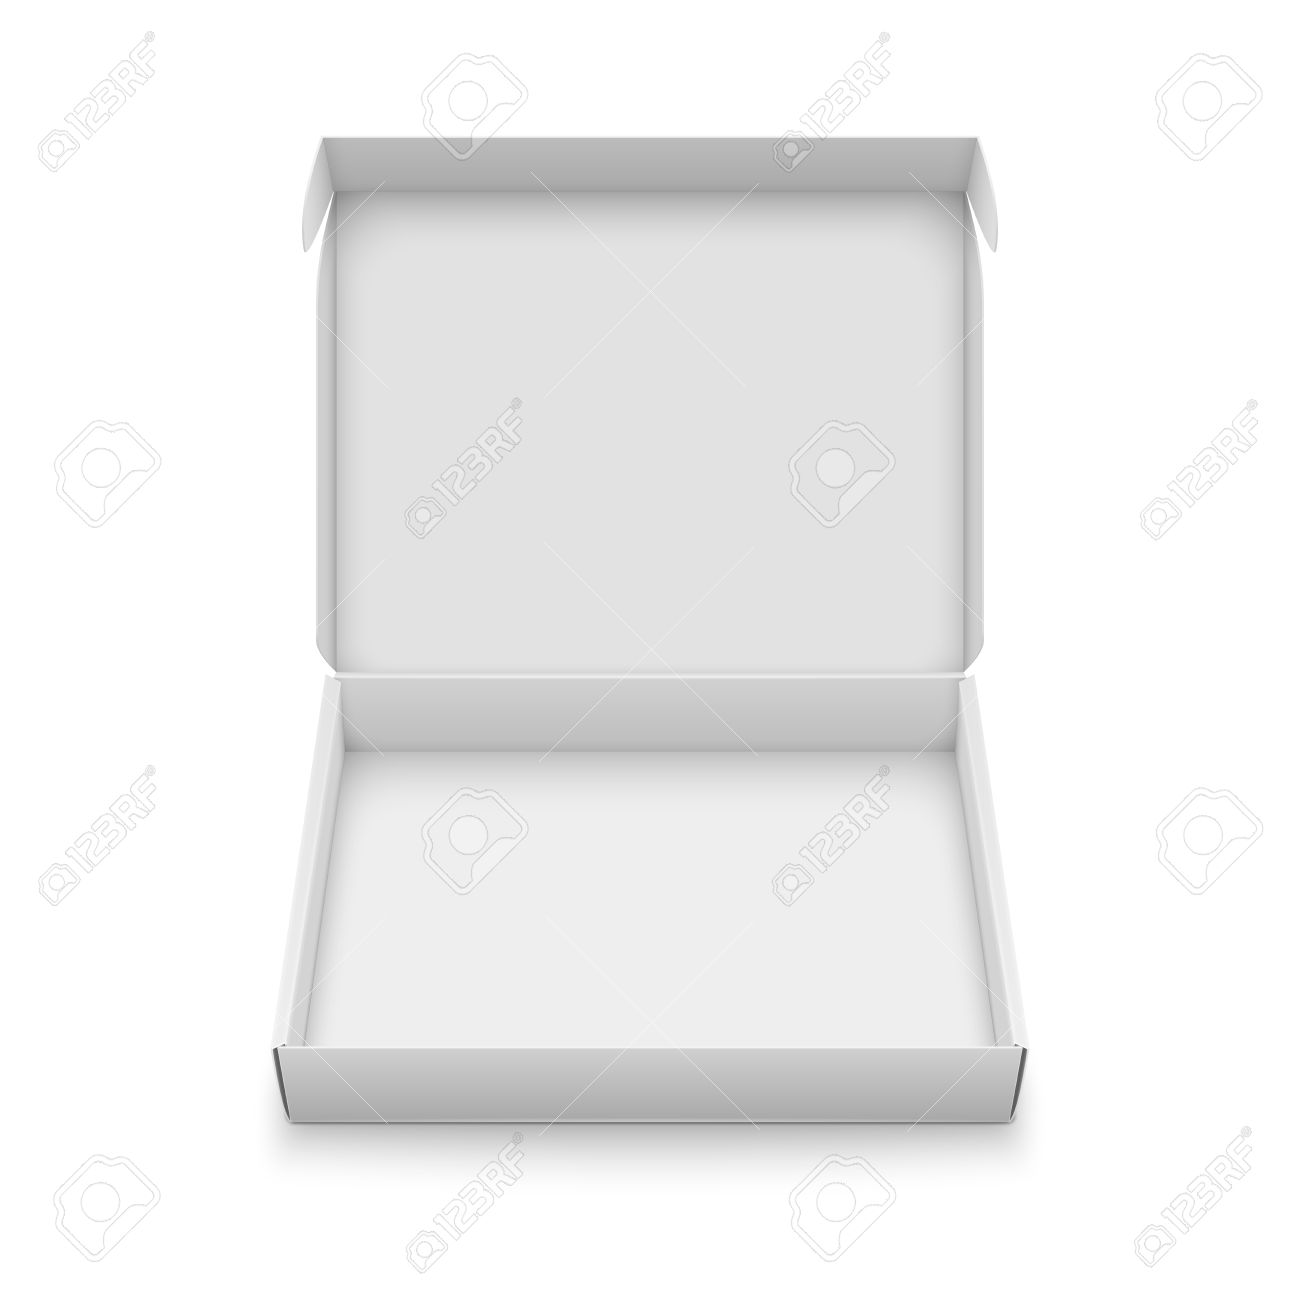 Blank Slim Cardboard Box Template With Open Lid Isolated On White Background Front View